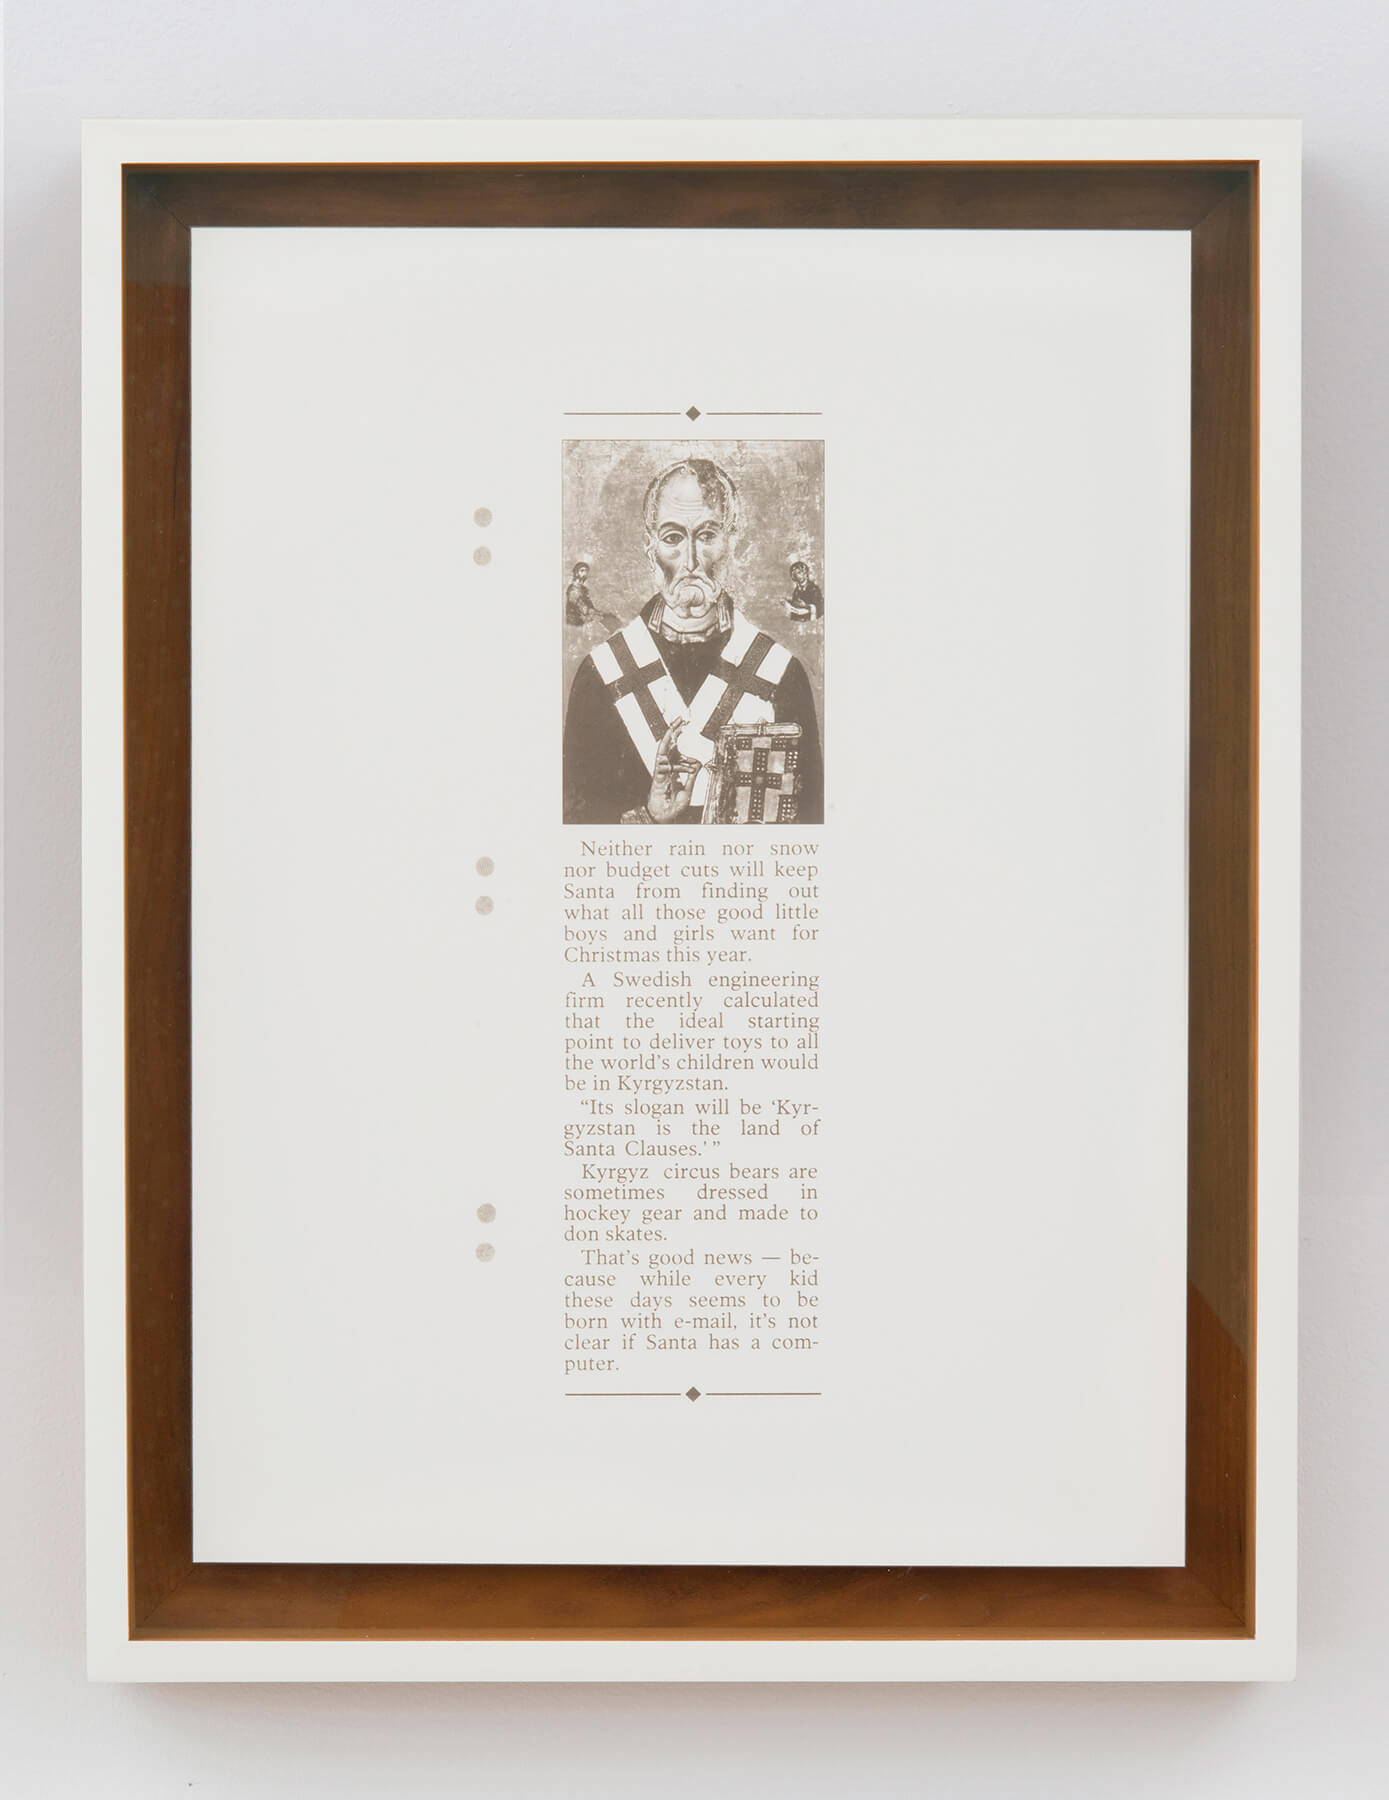 Ignacio Gonzalez-Lang                                         'Good News', 2013                                         16 x 12 inches                                         18 x 14.5 inches (framed)                                         laser on clay, board                                         edition : 1 + 1AP